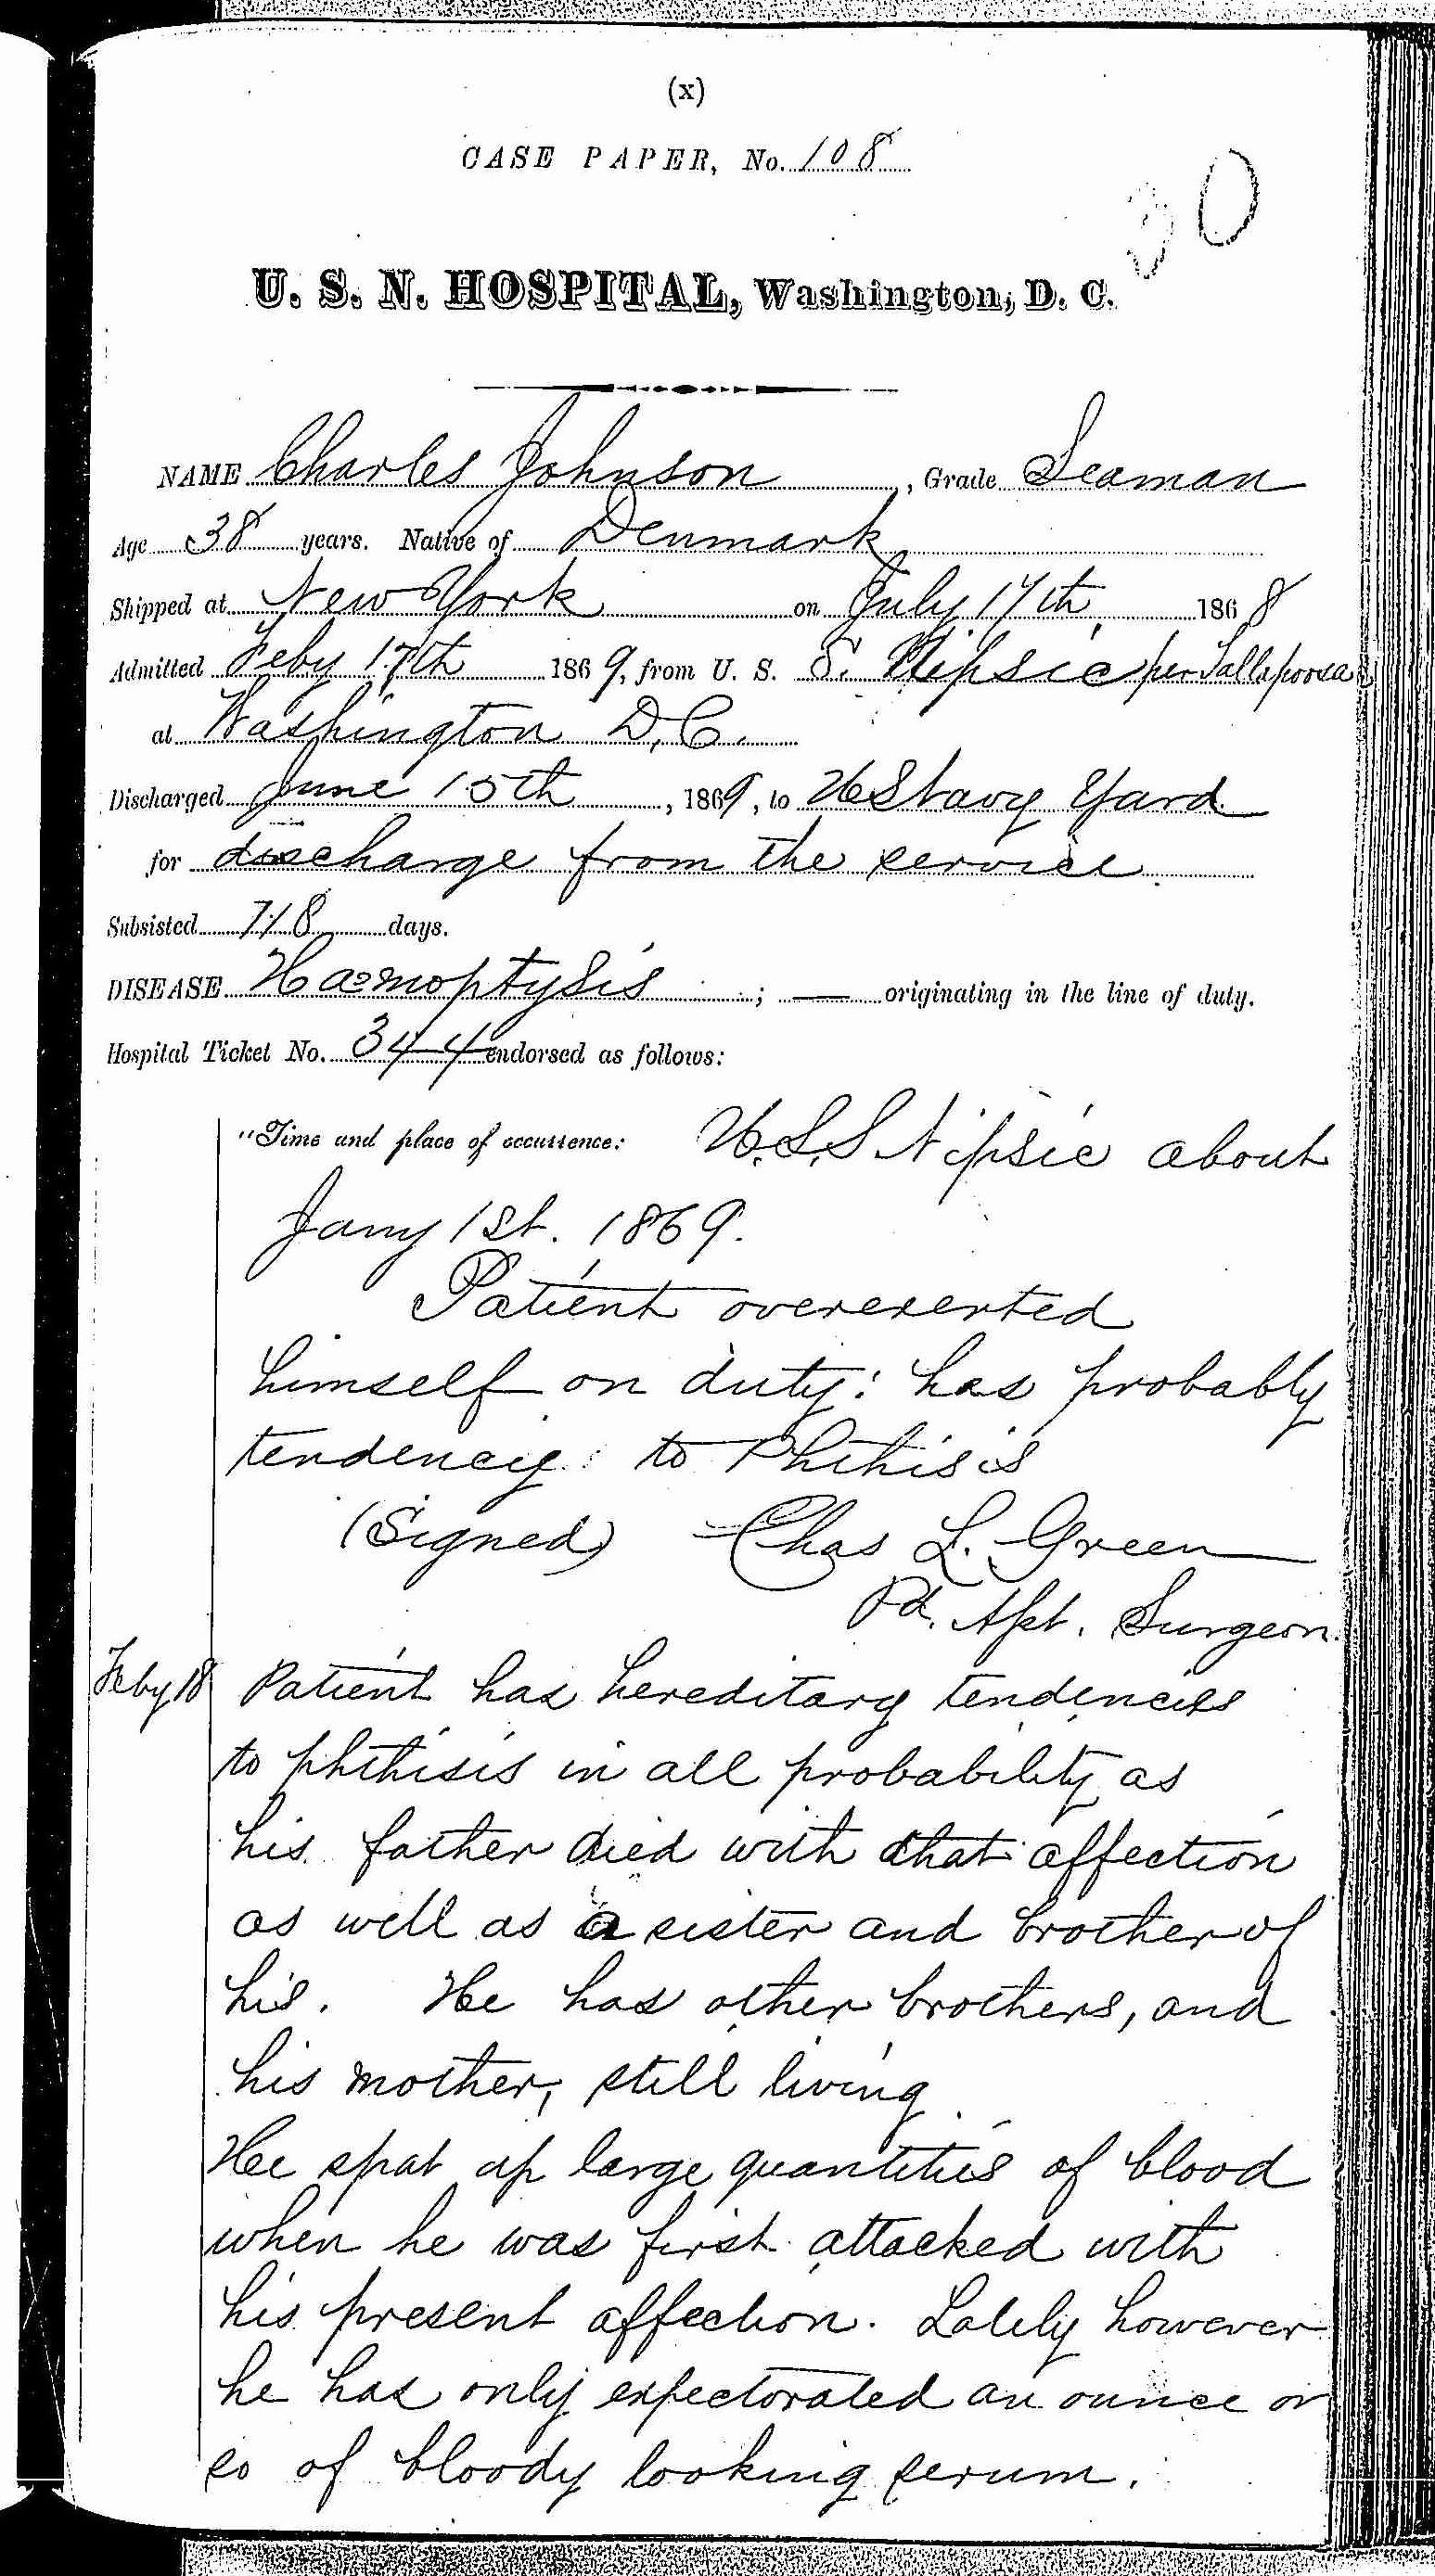 Entry for Charles Johnson (page 1 of 15) in the log Hospital Tickets and Case Papers - Naval Hospital - Washington, D.C. - 1868-69